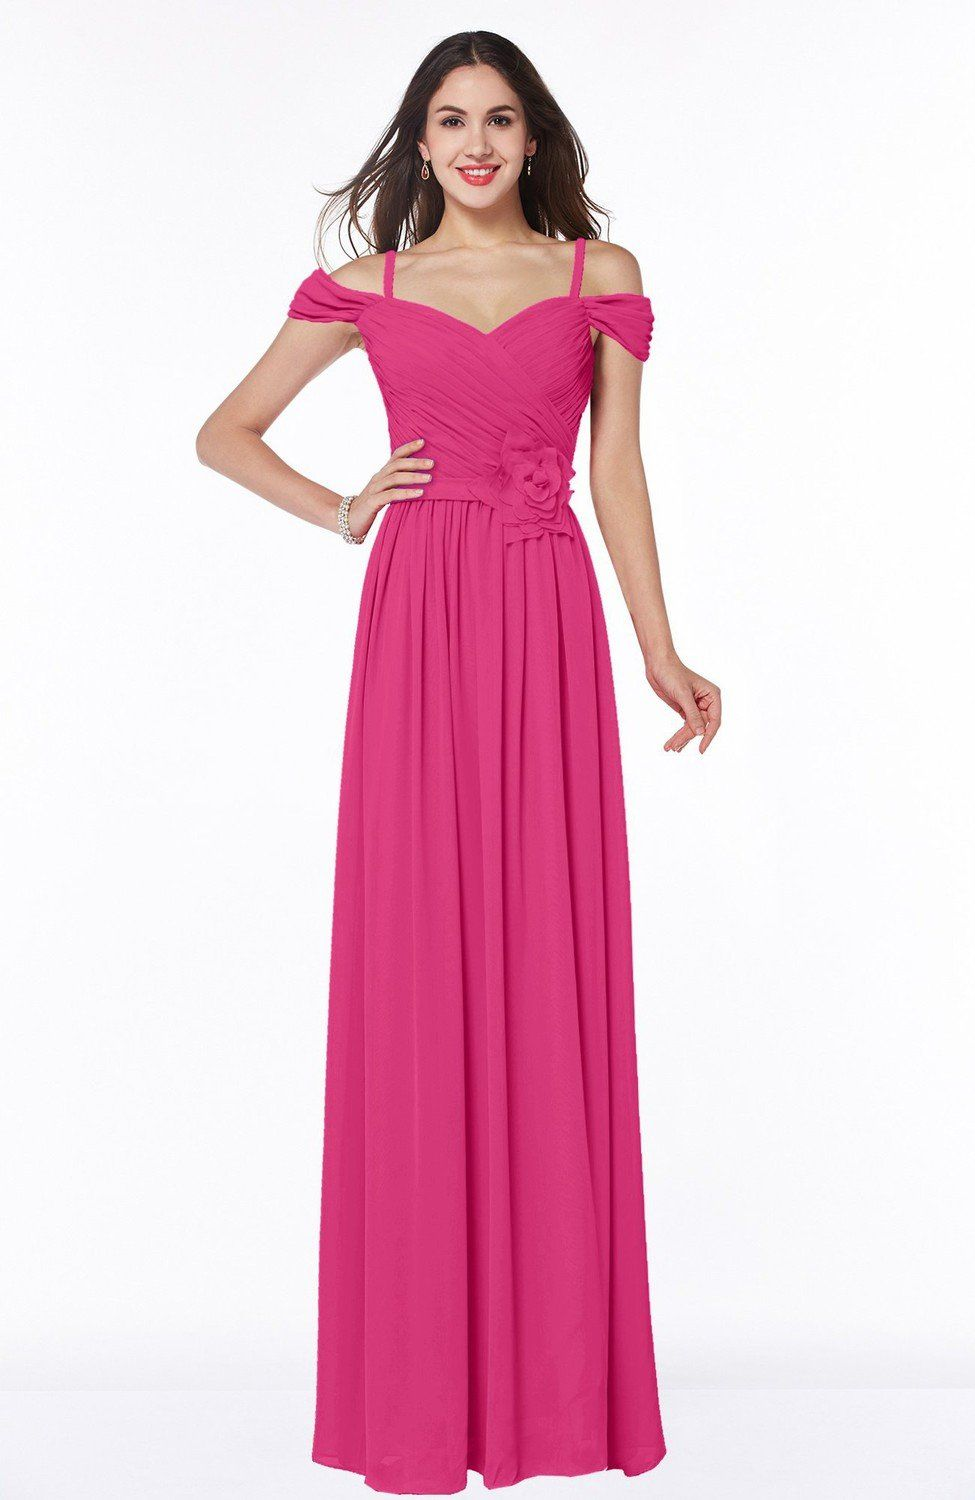 Fuschia Bridesmaid Dress - Gorgeous A-line Off-the-Shoulder Short ...